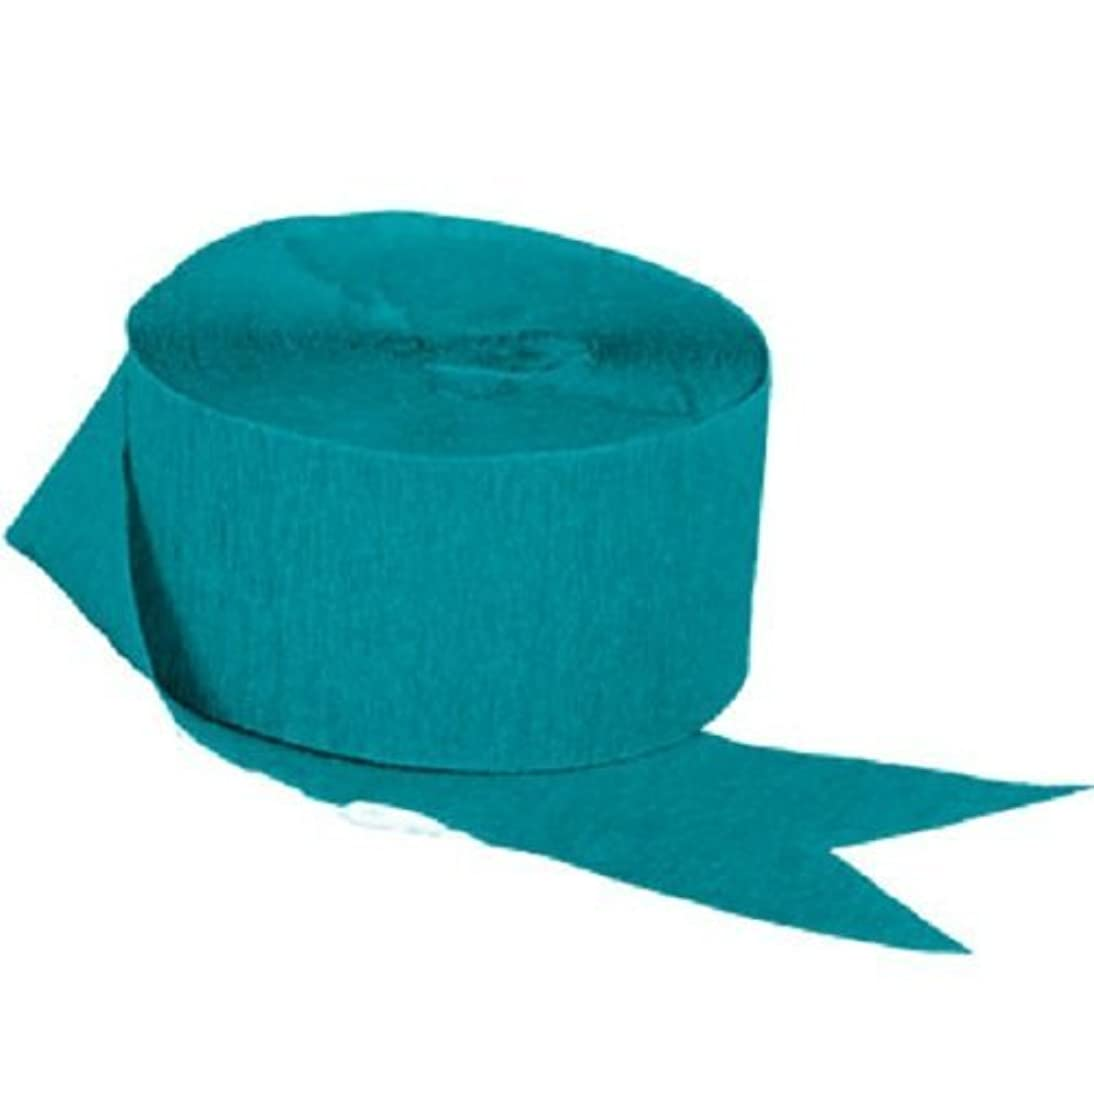 TEAL Crepe Paper Streamers, 2 ROLLS, 145 FT TOTAL, MADE IN USA!